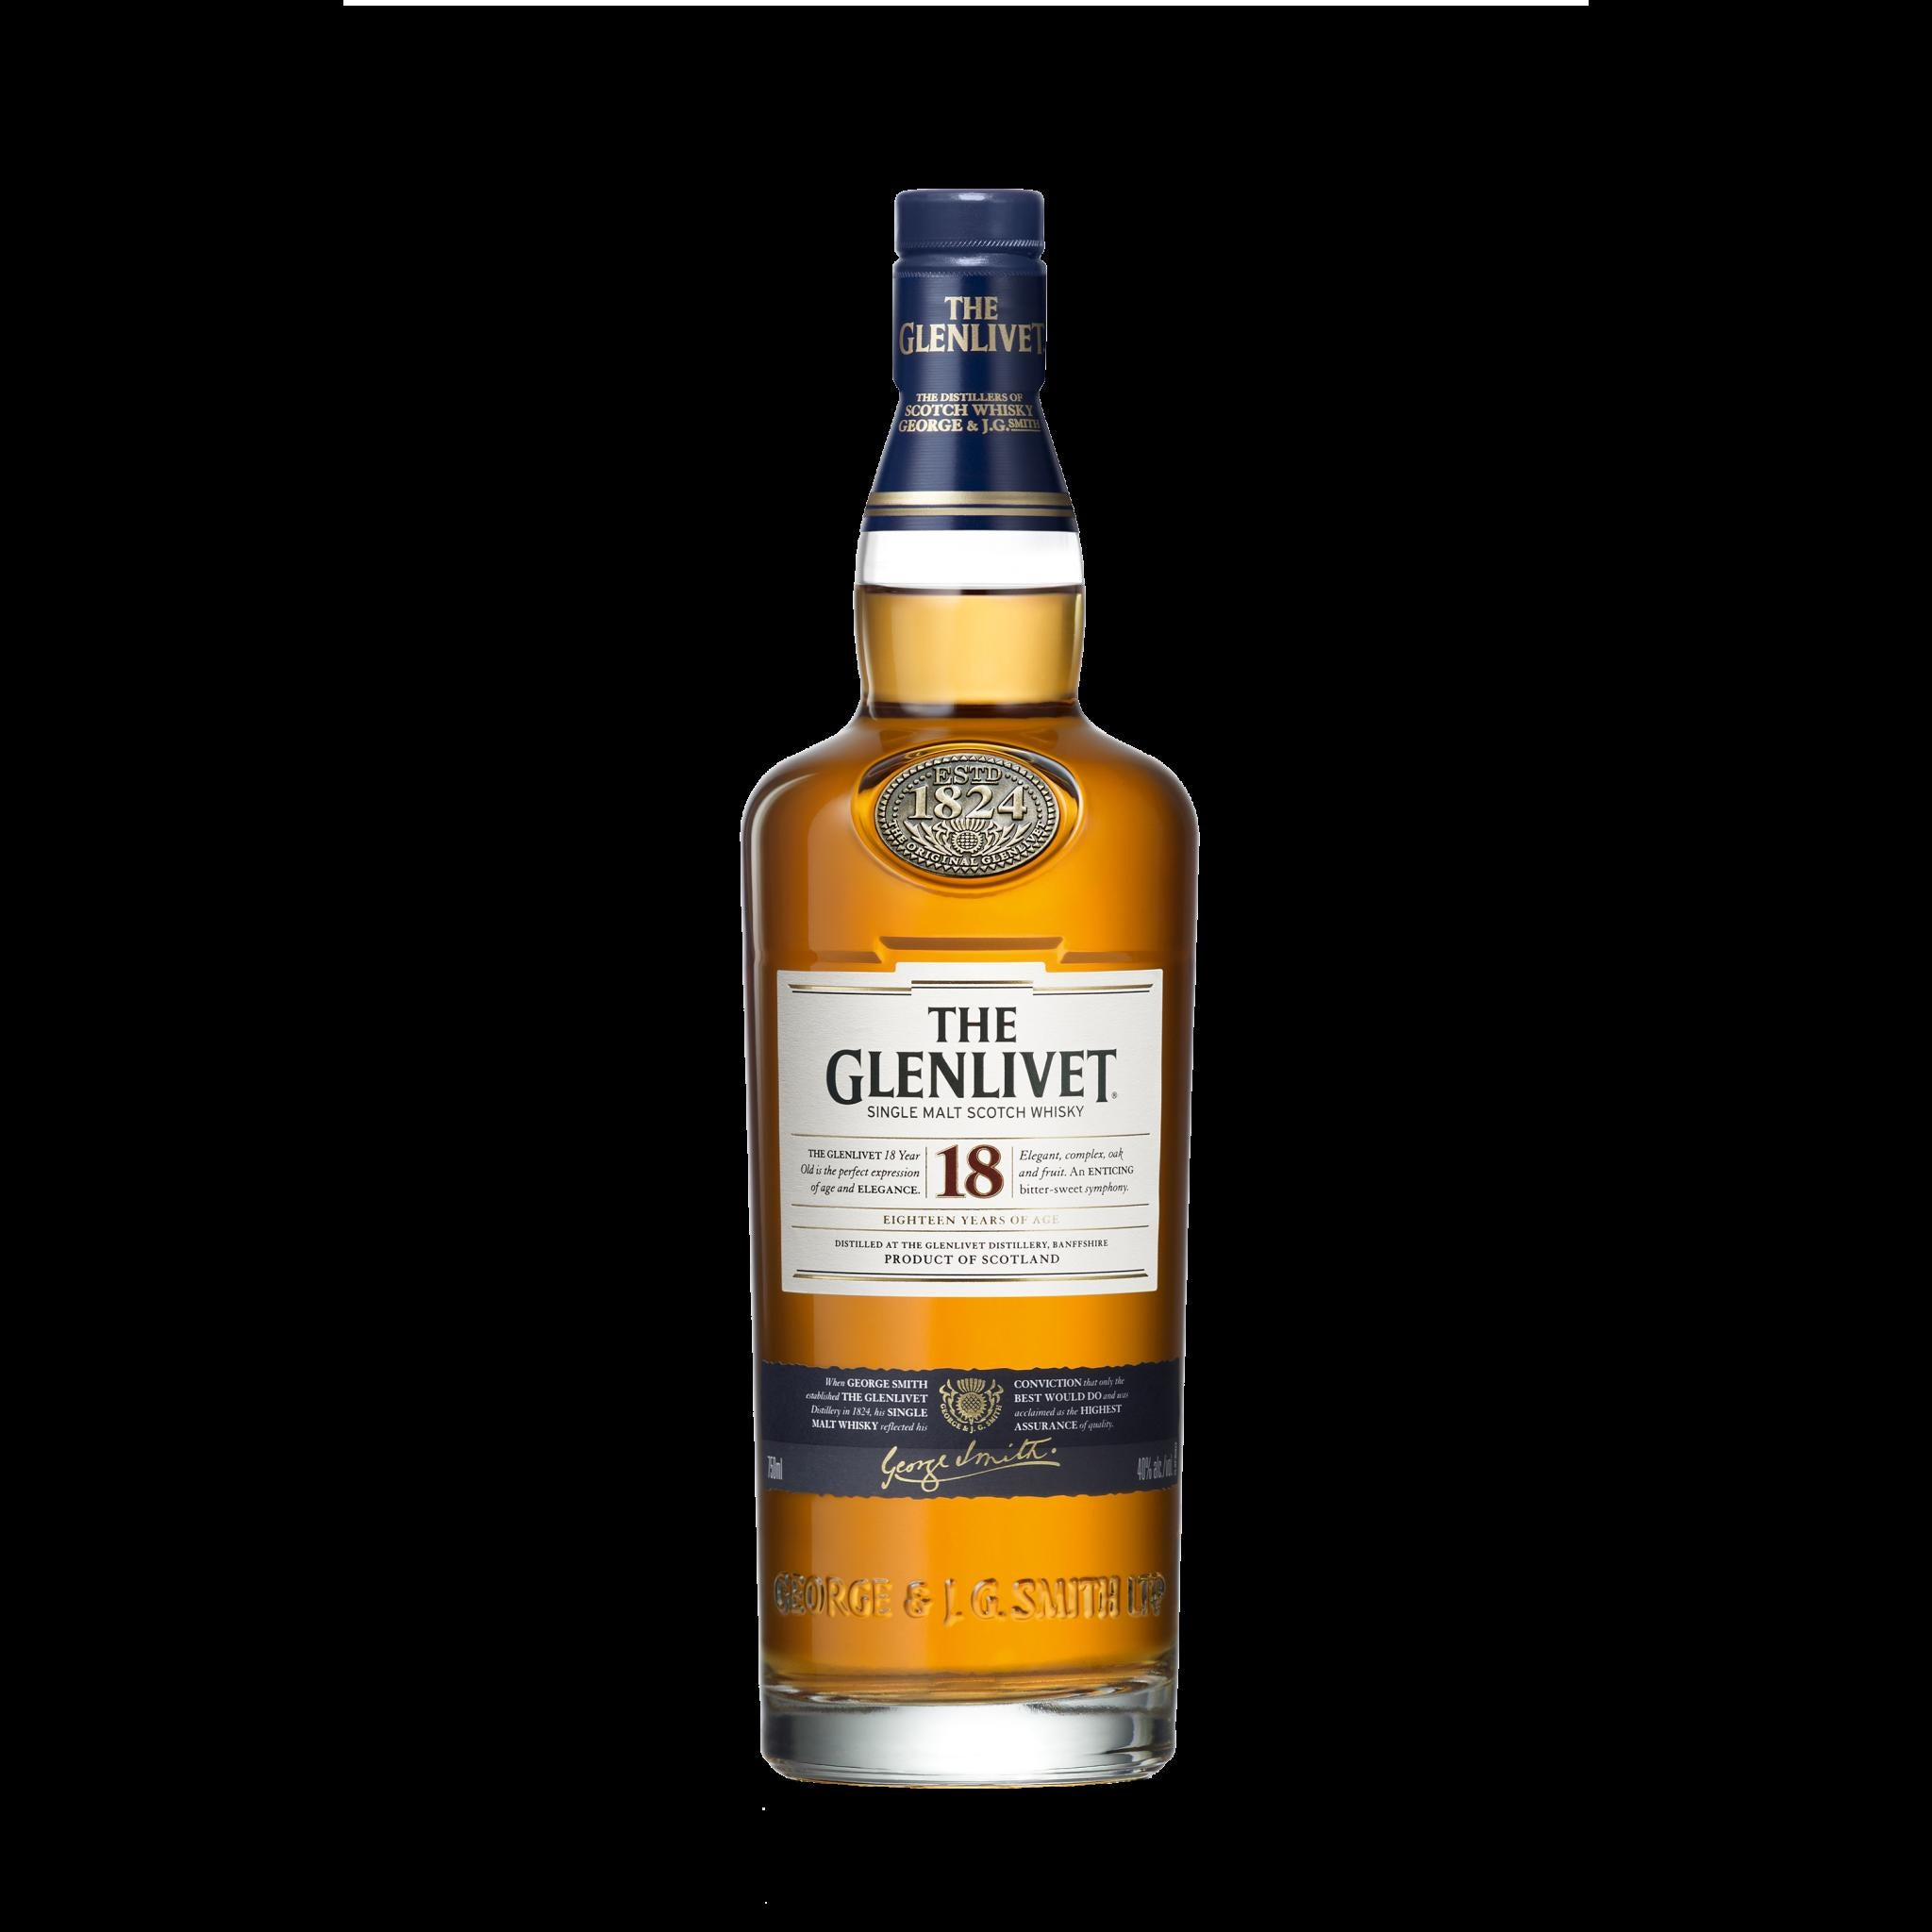 stl>Glenlivet 18 Year Old Scotch Whisky - 750ml